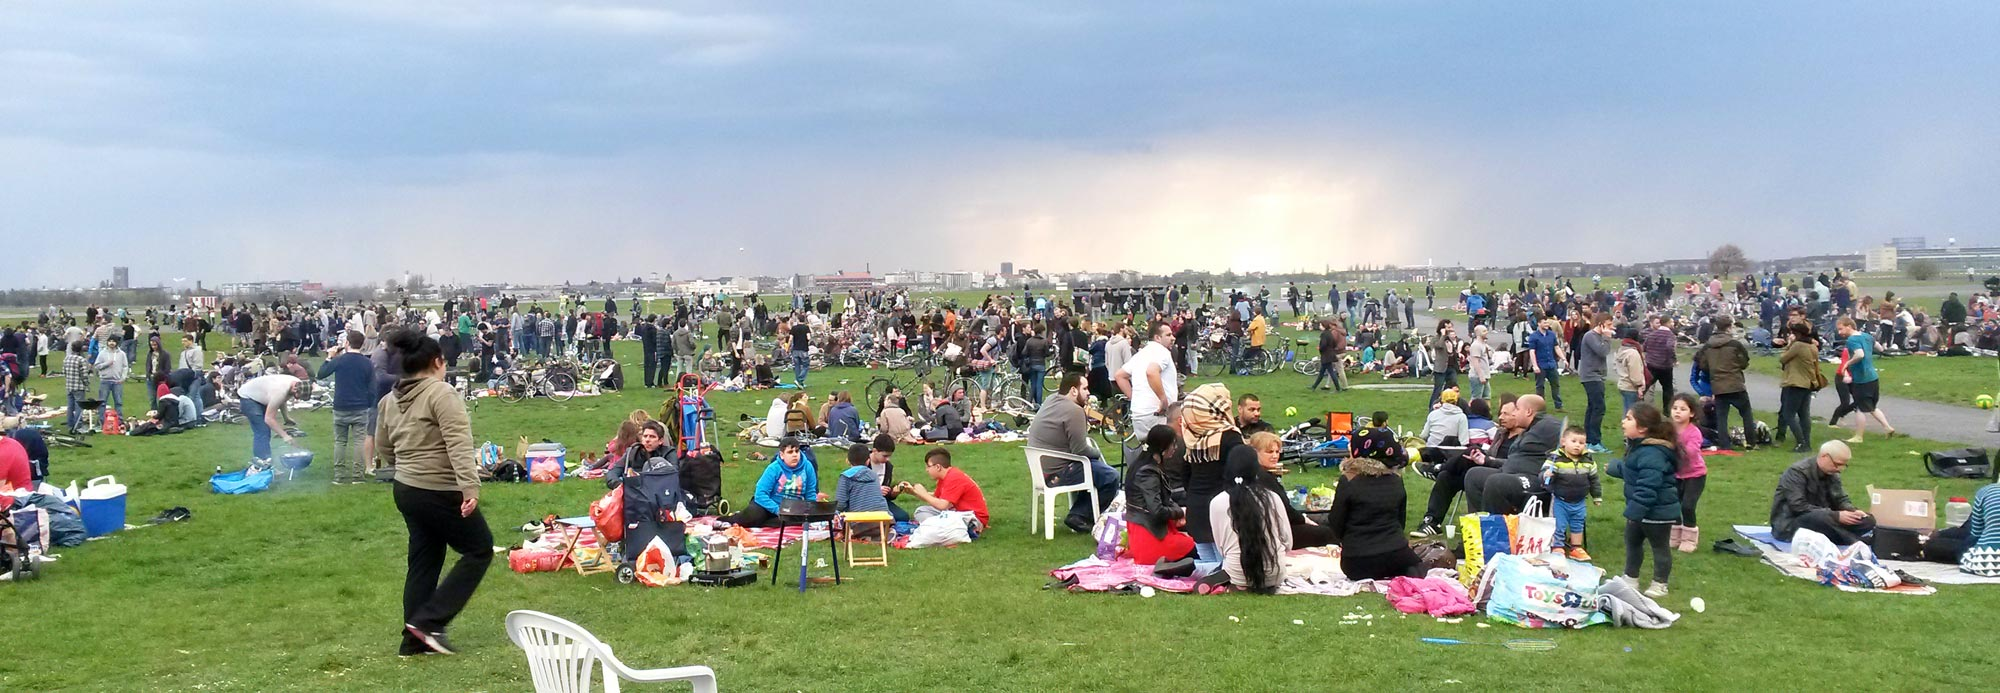 Grillen am Tempelhofer Feld